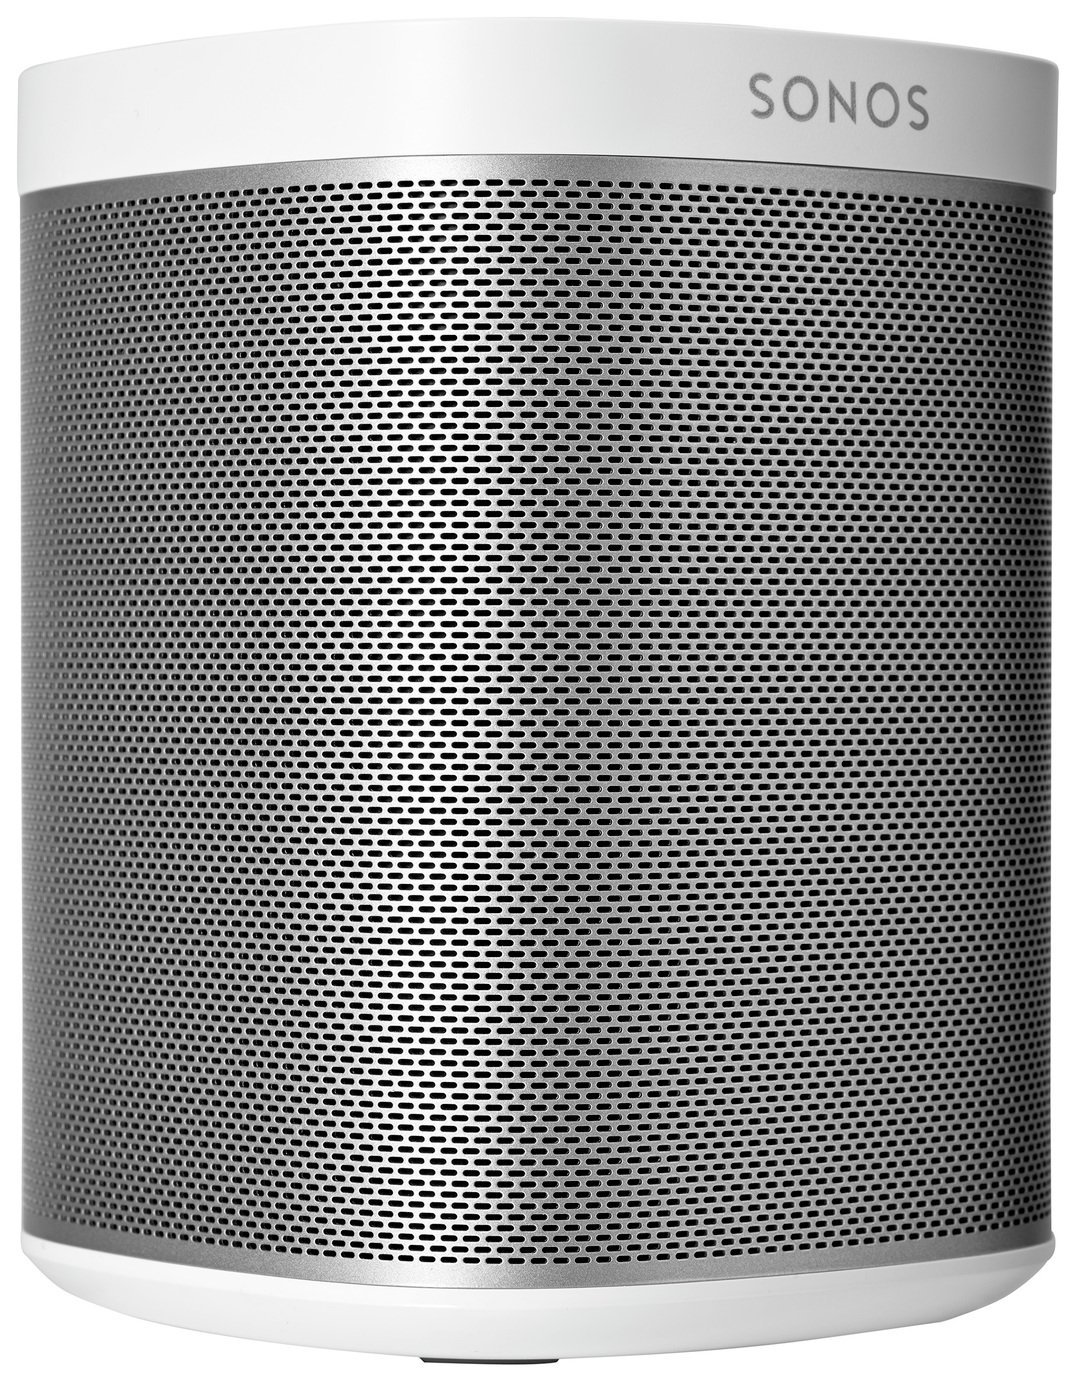 Image of Sonos PLAY:1 Wireless Speaker - White